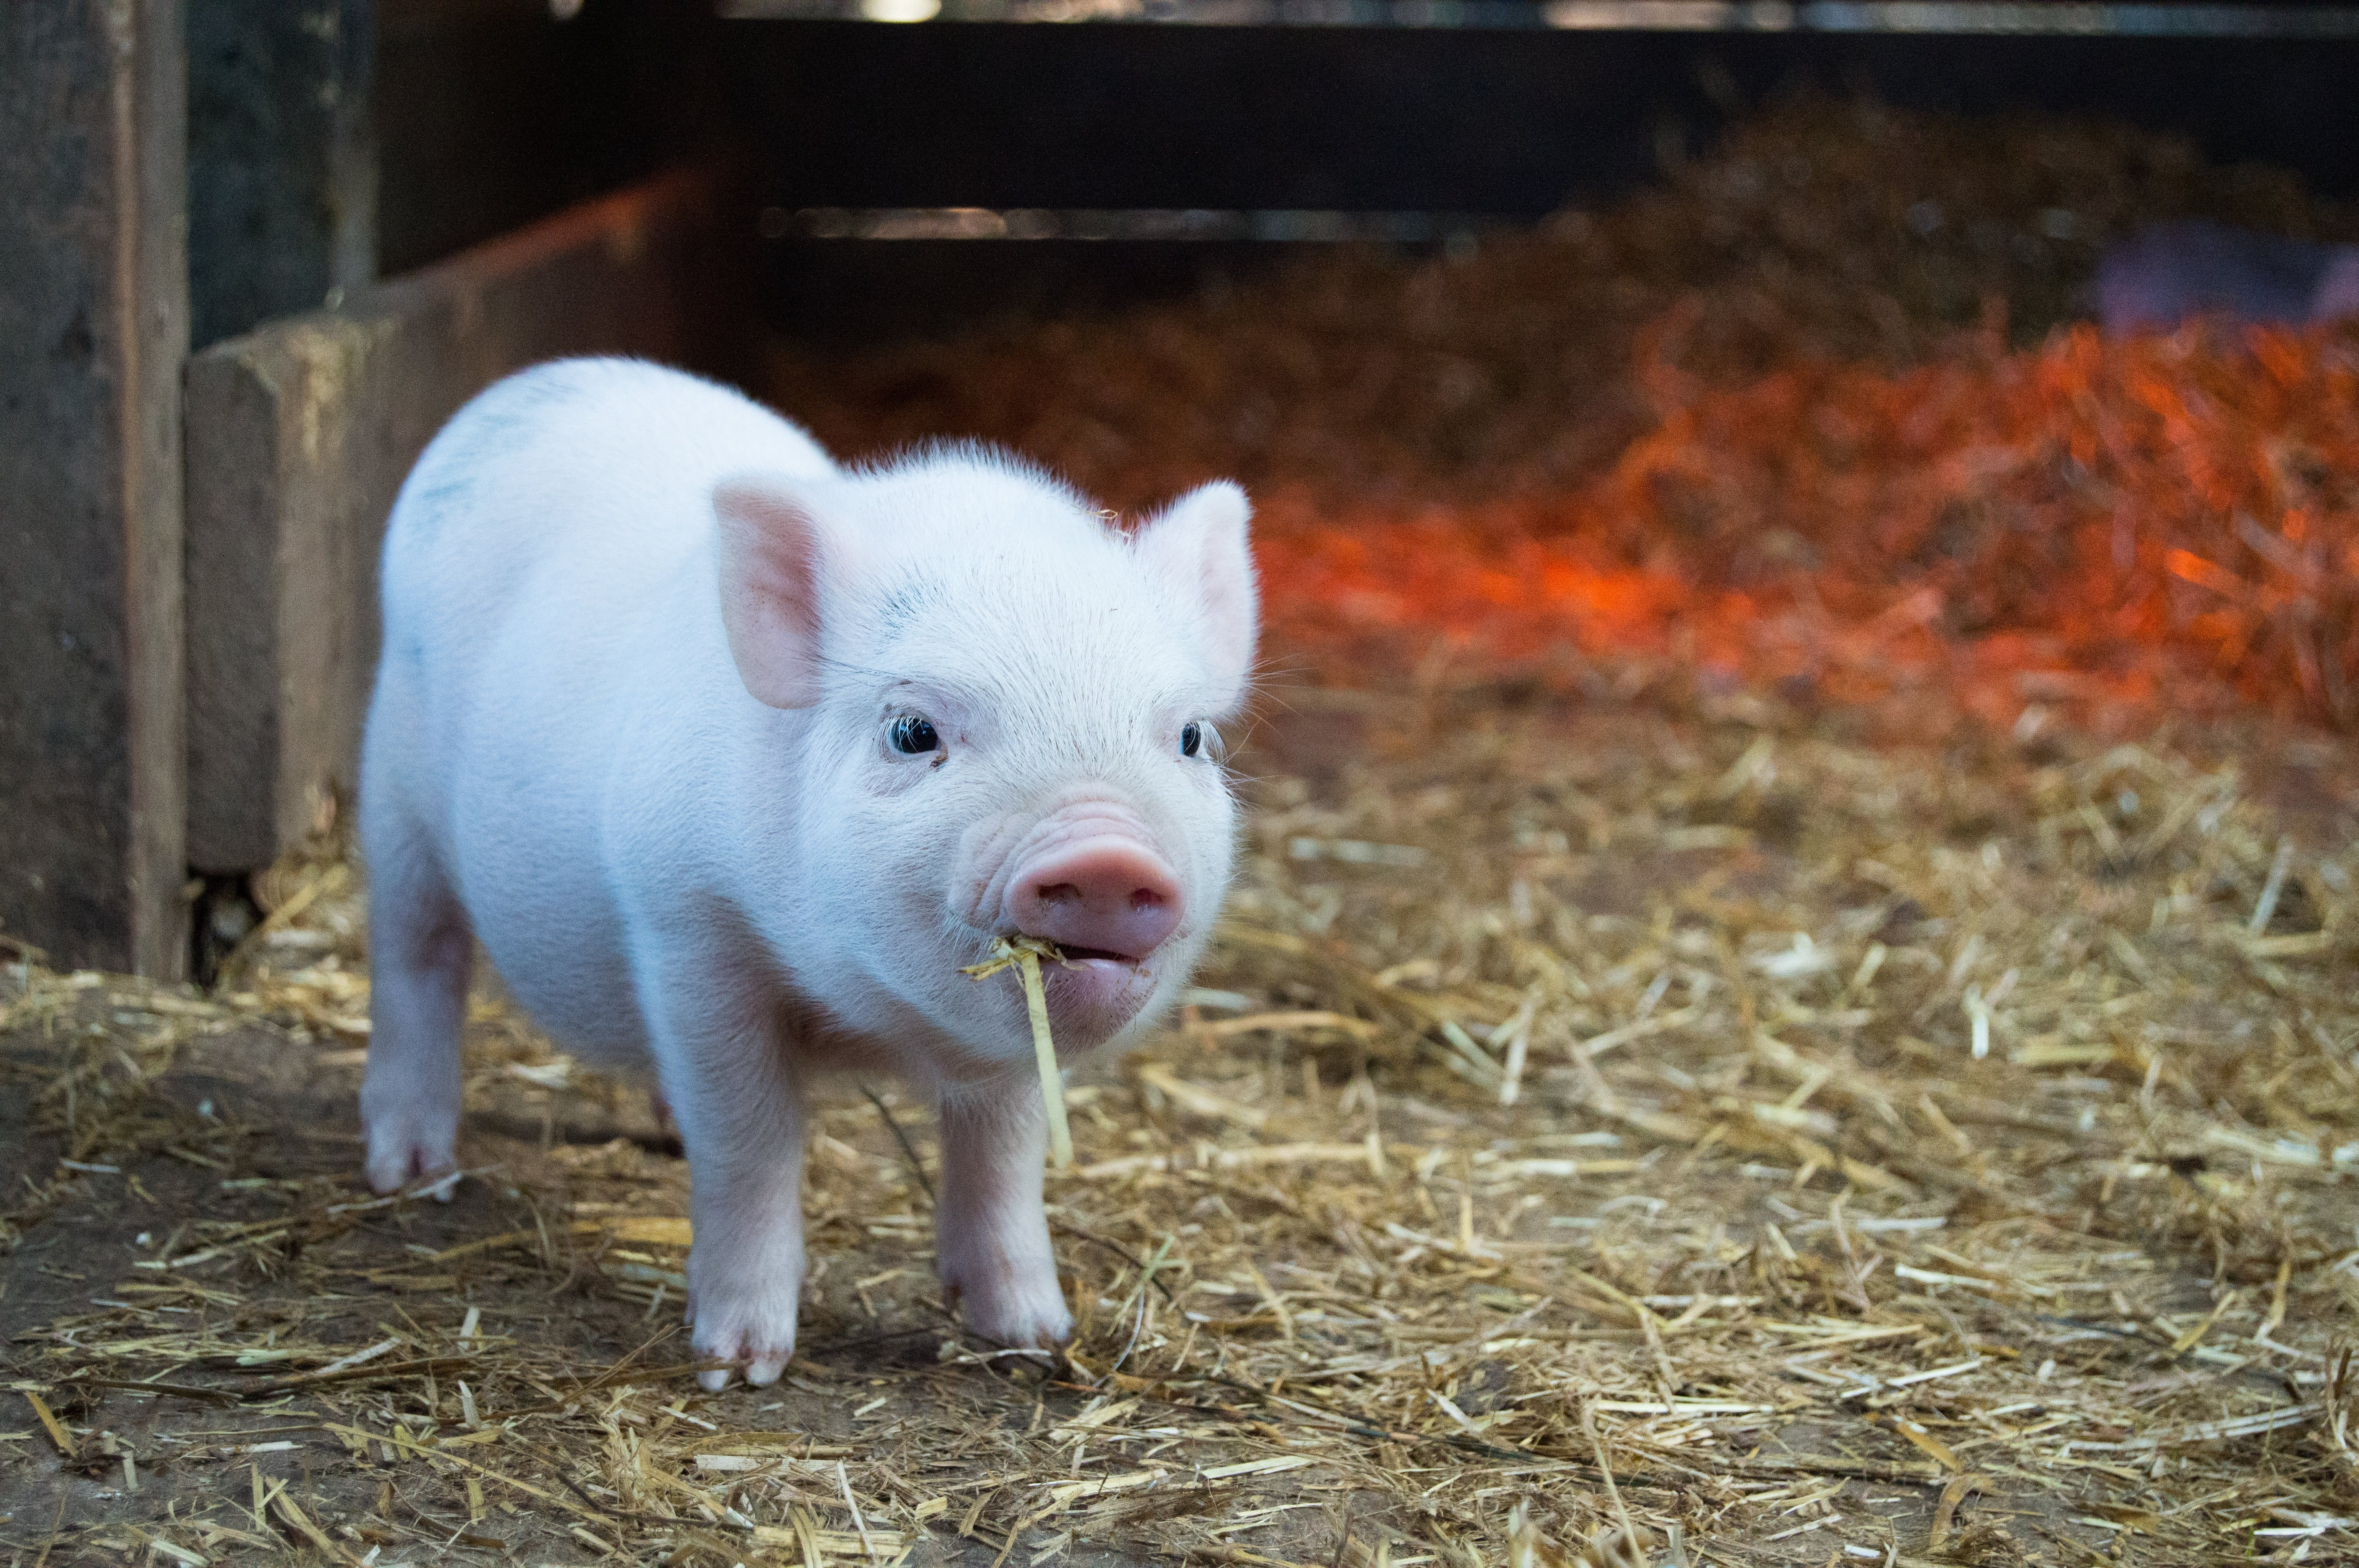 Cute little piglet chewing on hay